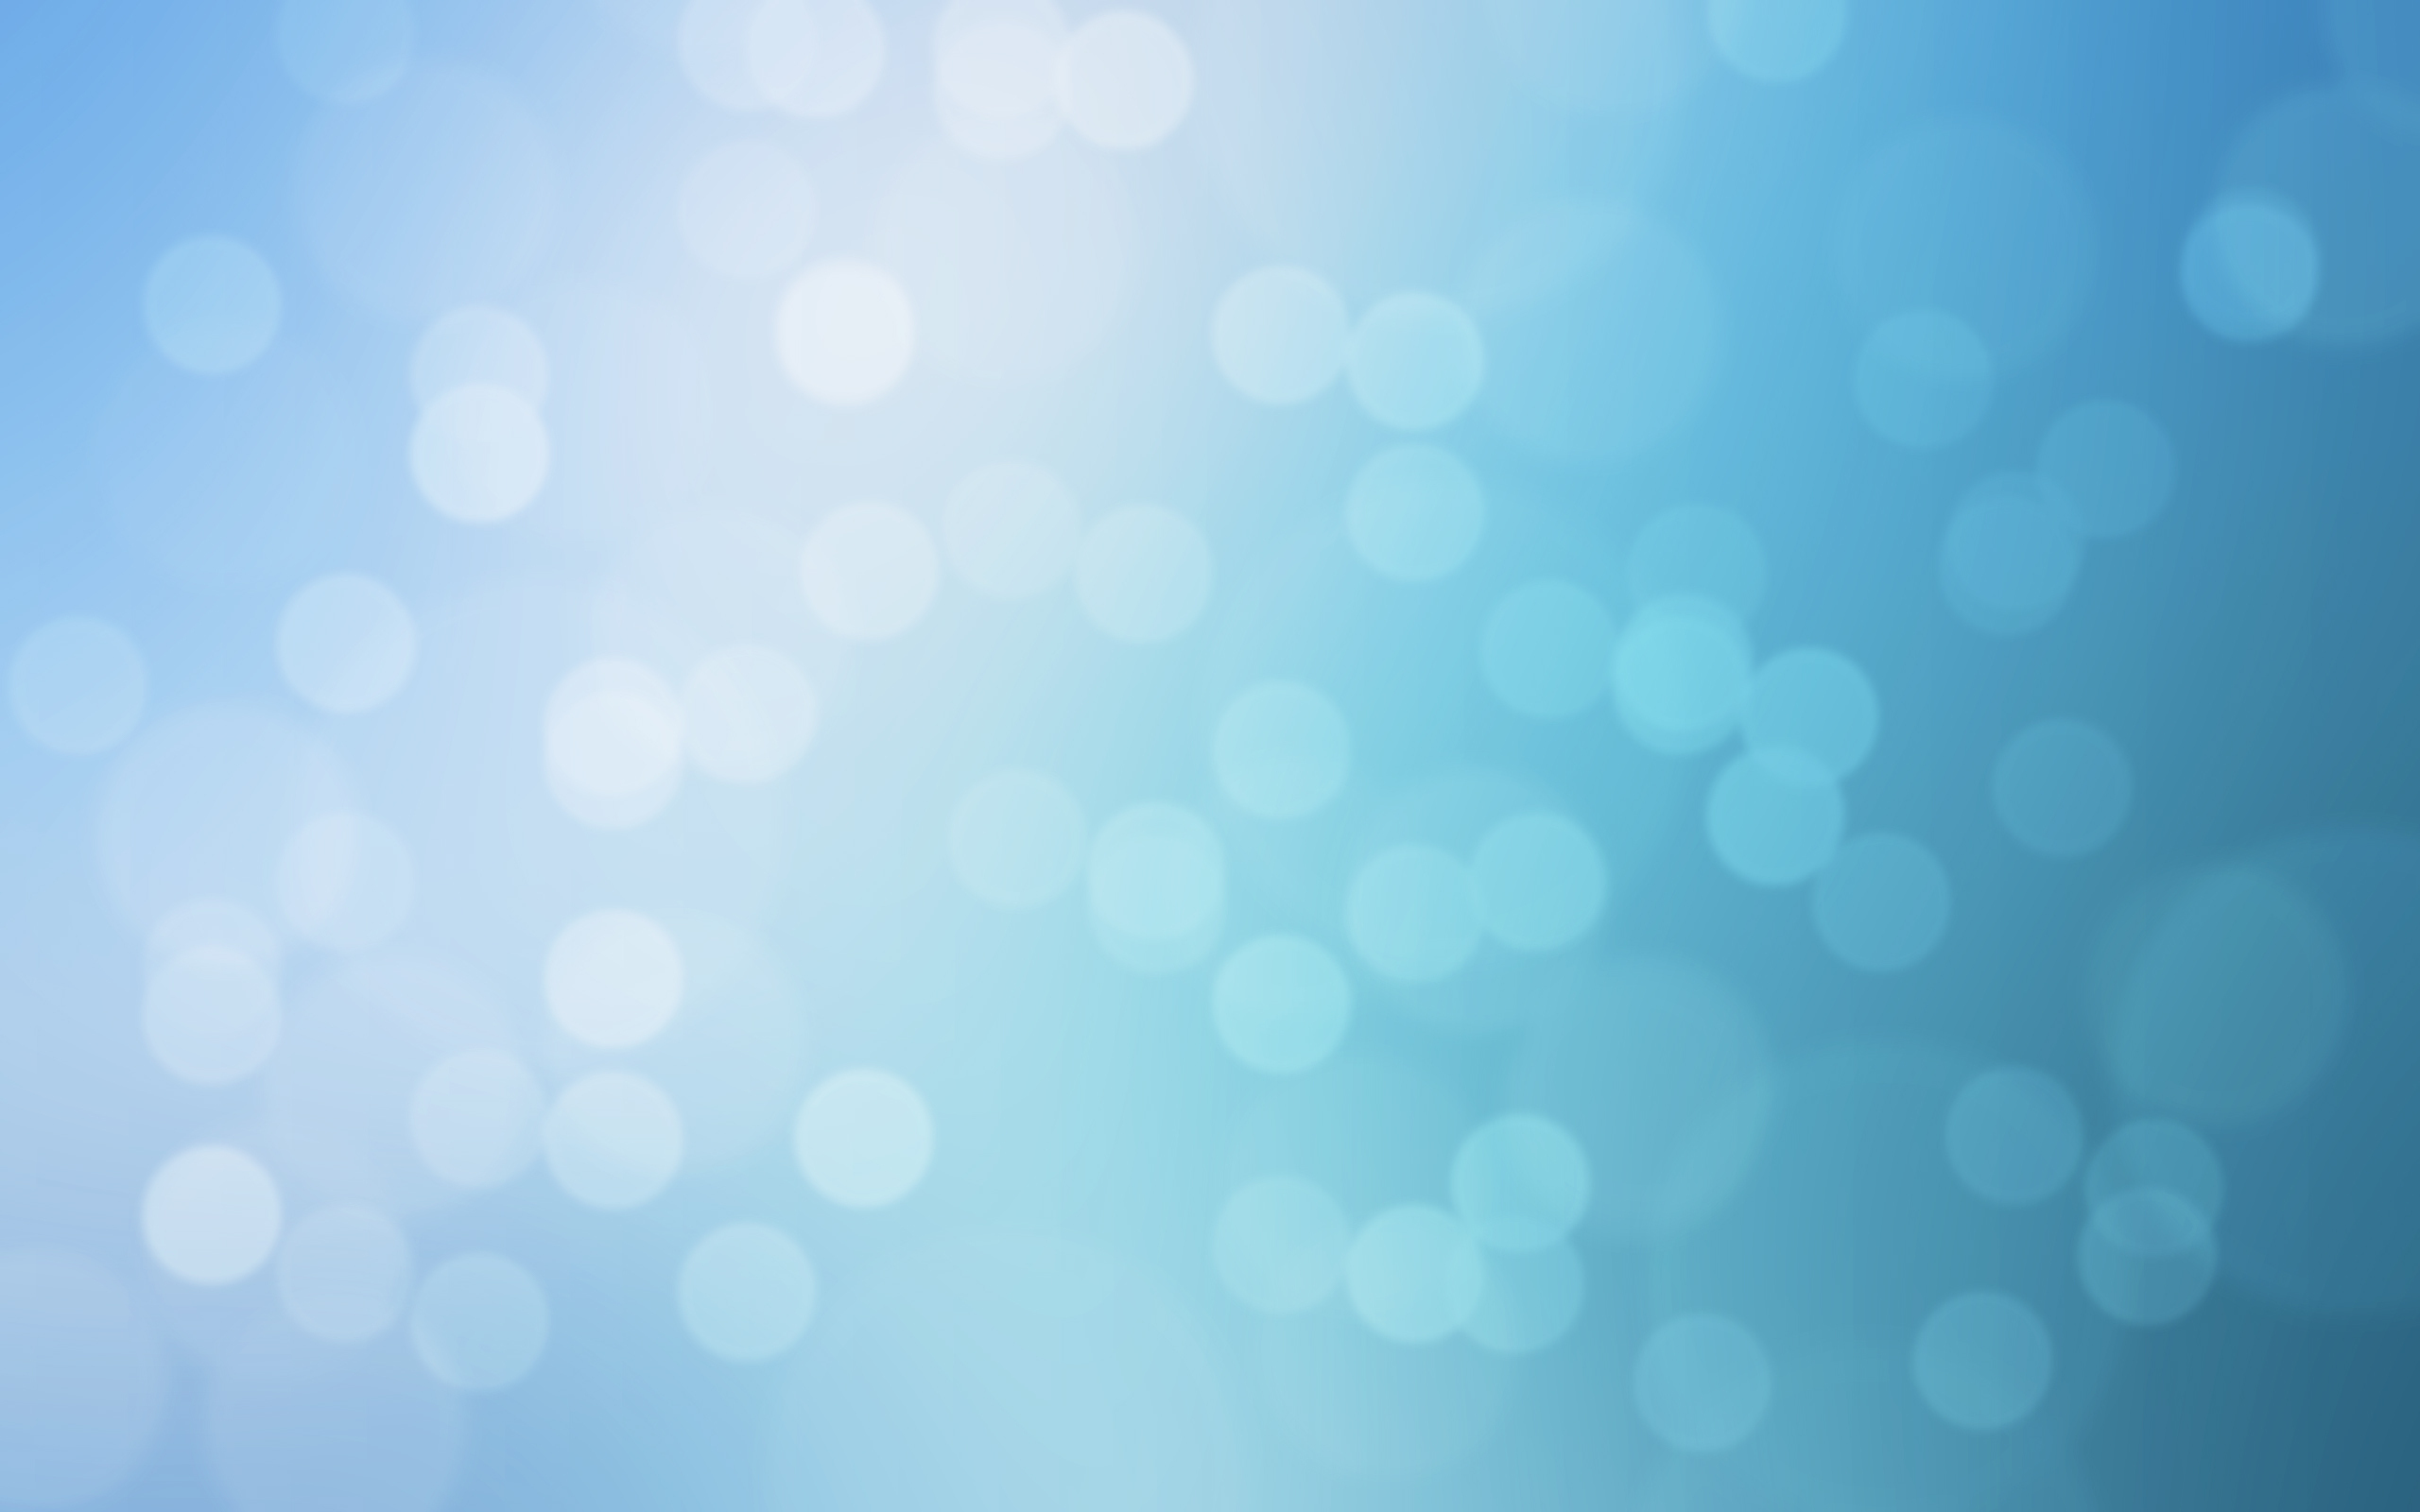 Wallpaper Light Blue